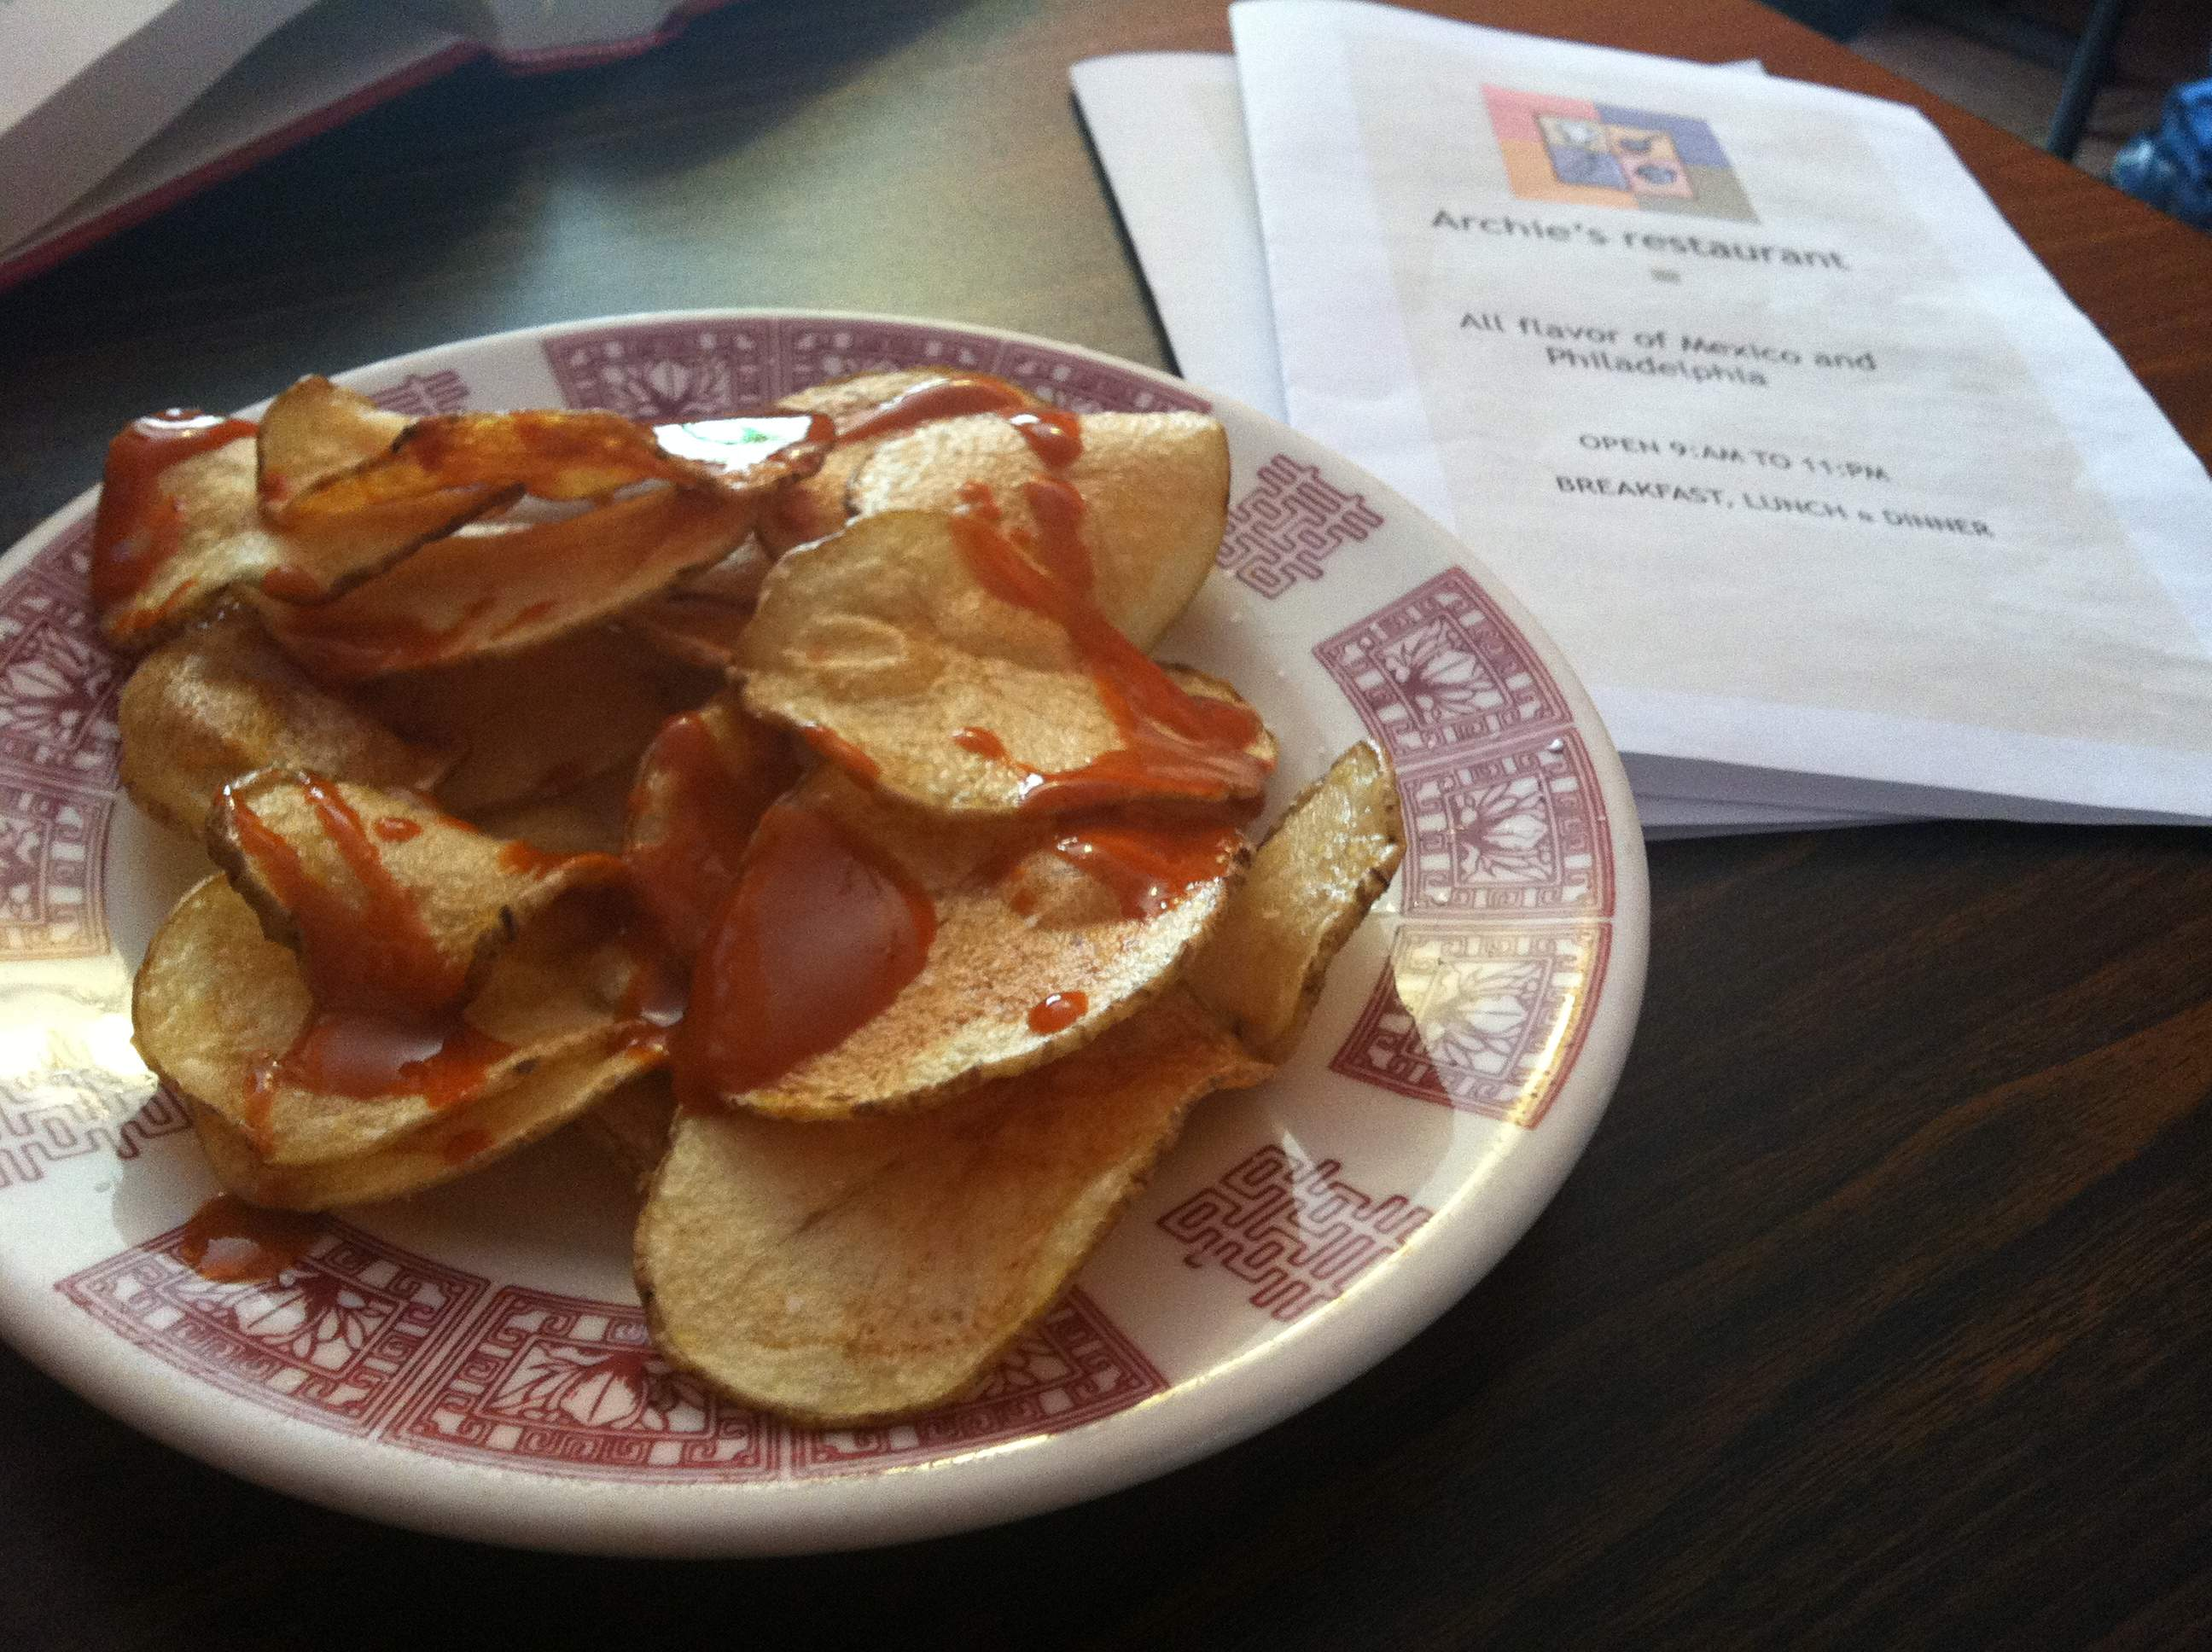 ... chips and salsa. Instead, homemade potato chips and hot sauce came out